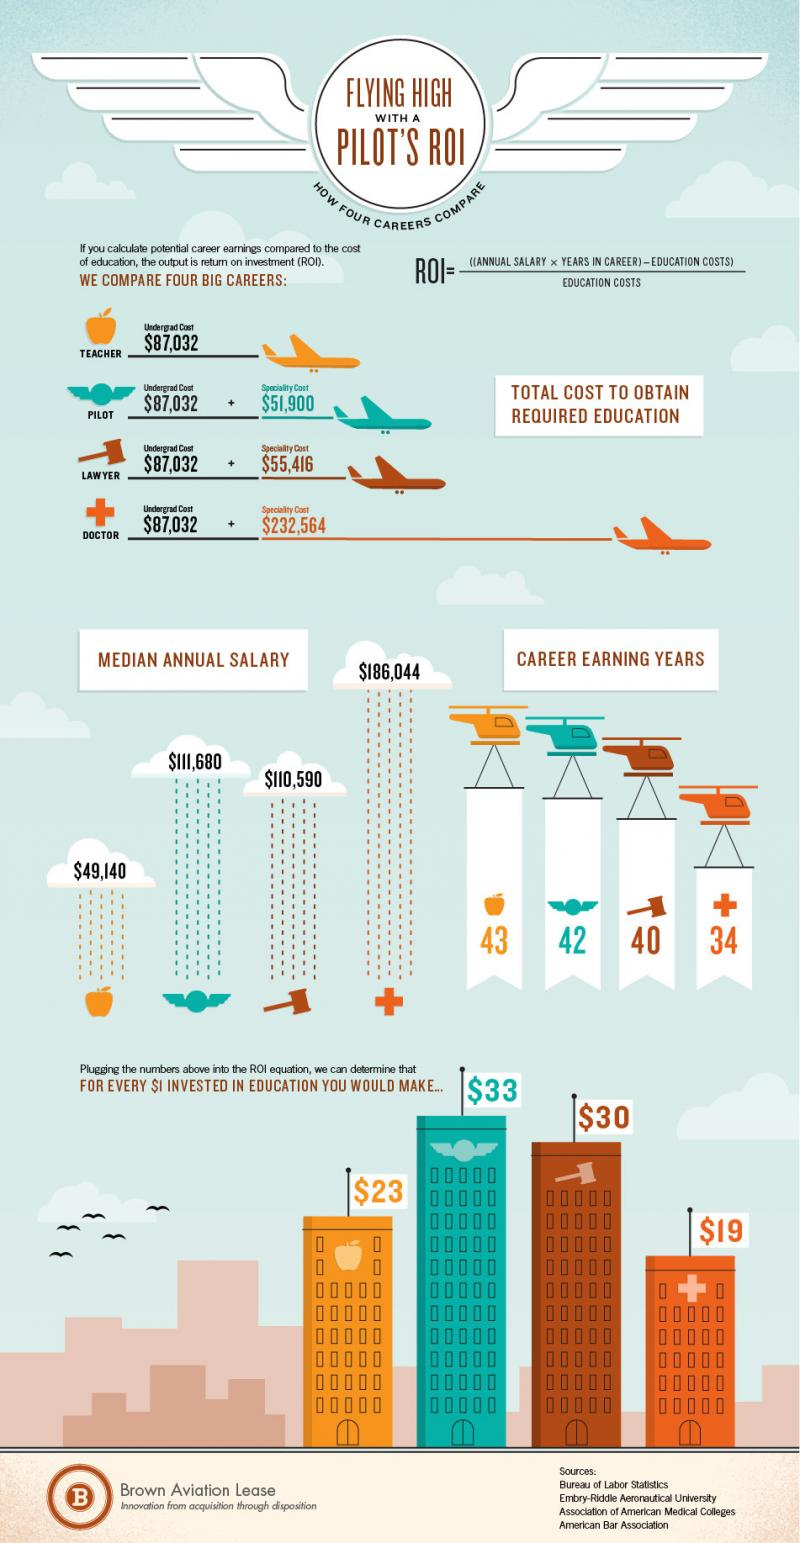 Flying high with a pilot's ROI #infographic